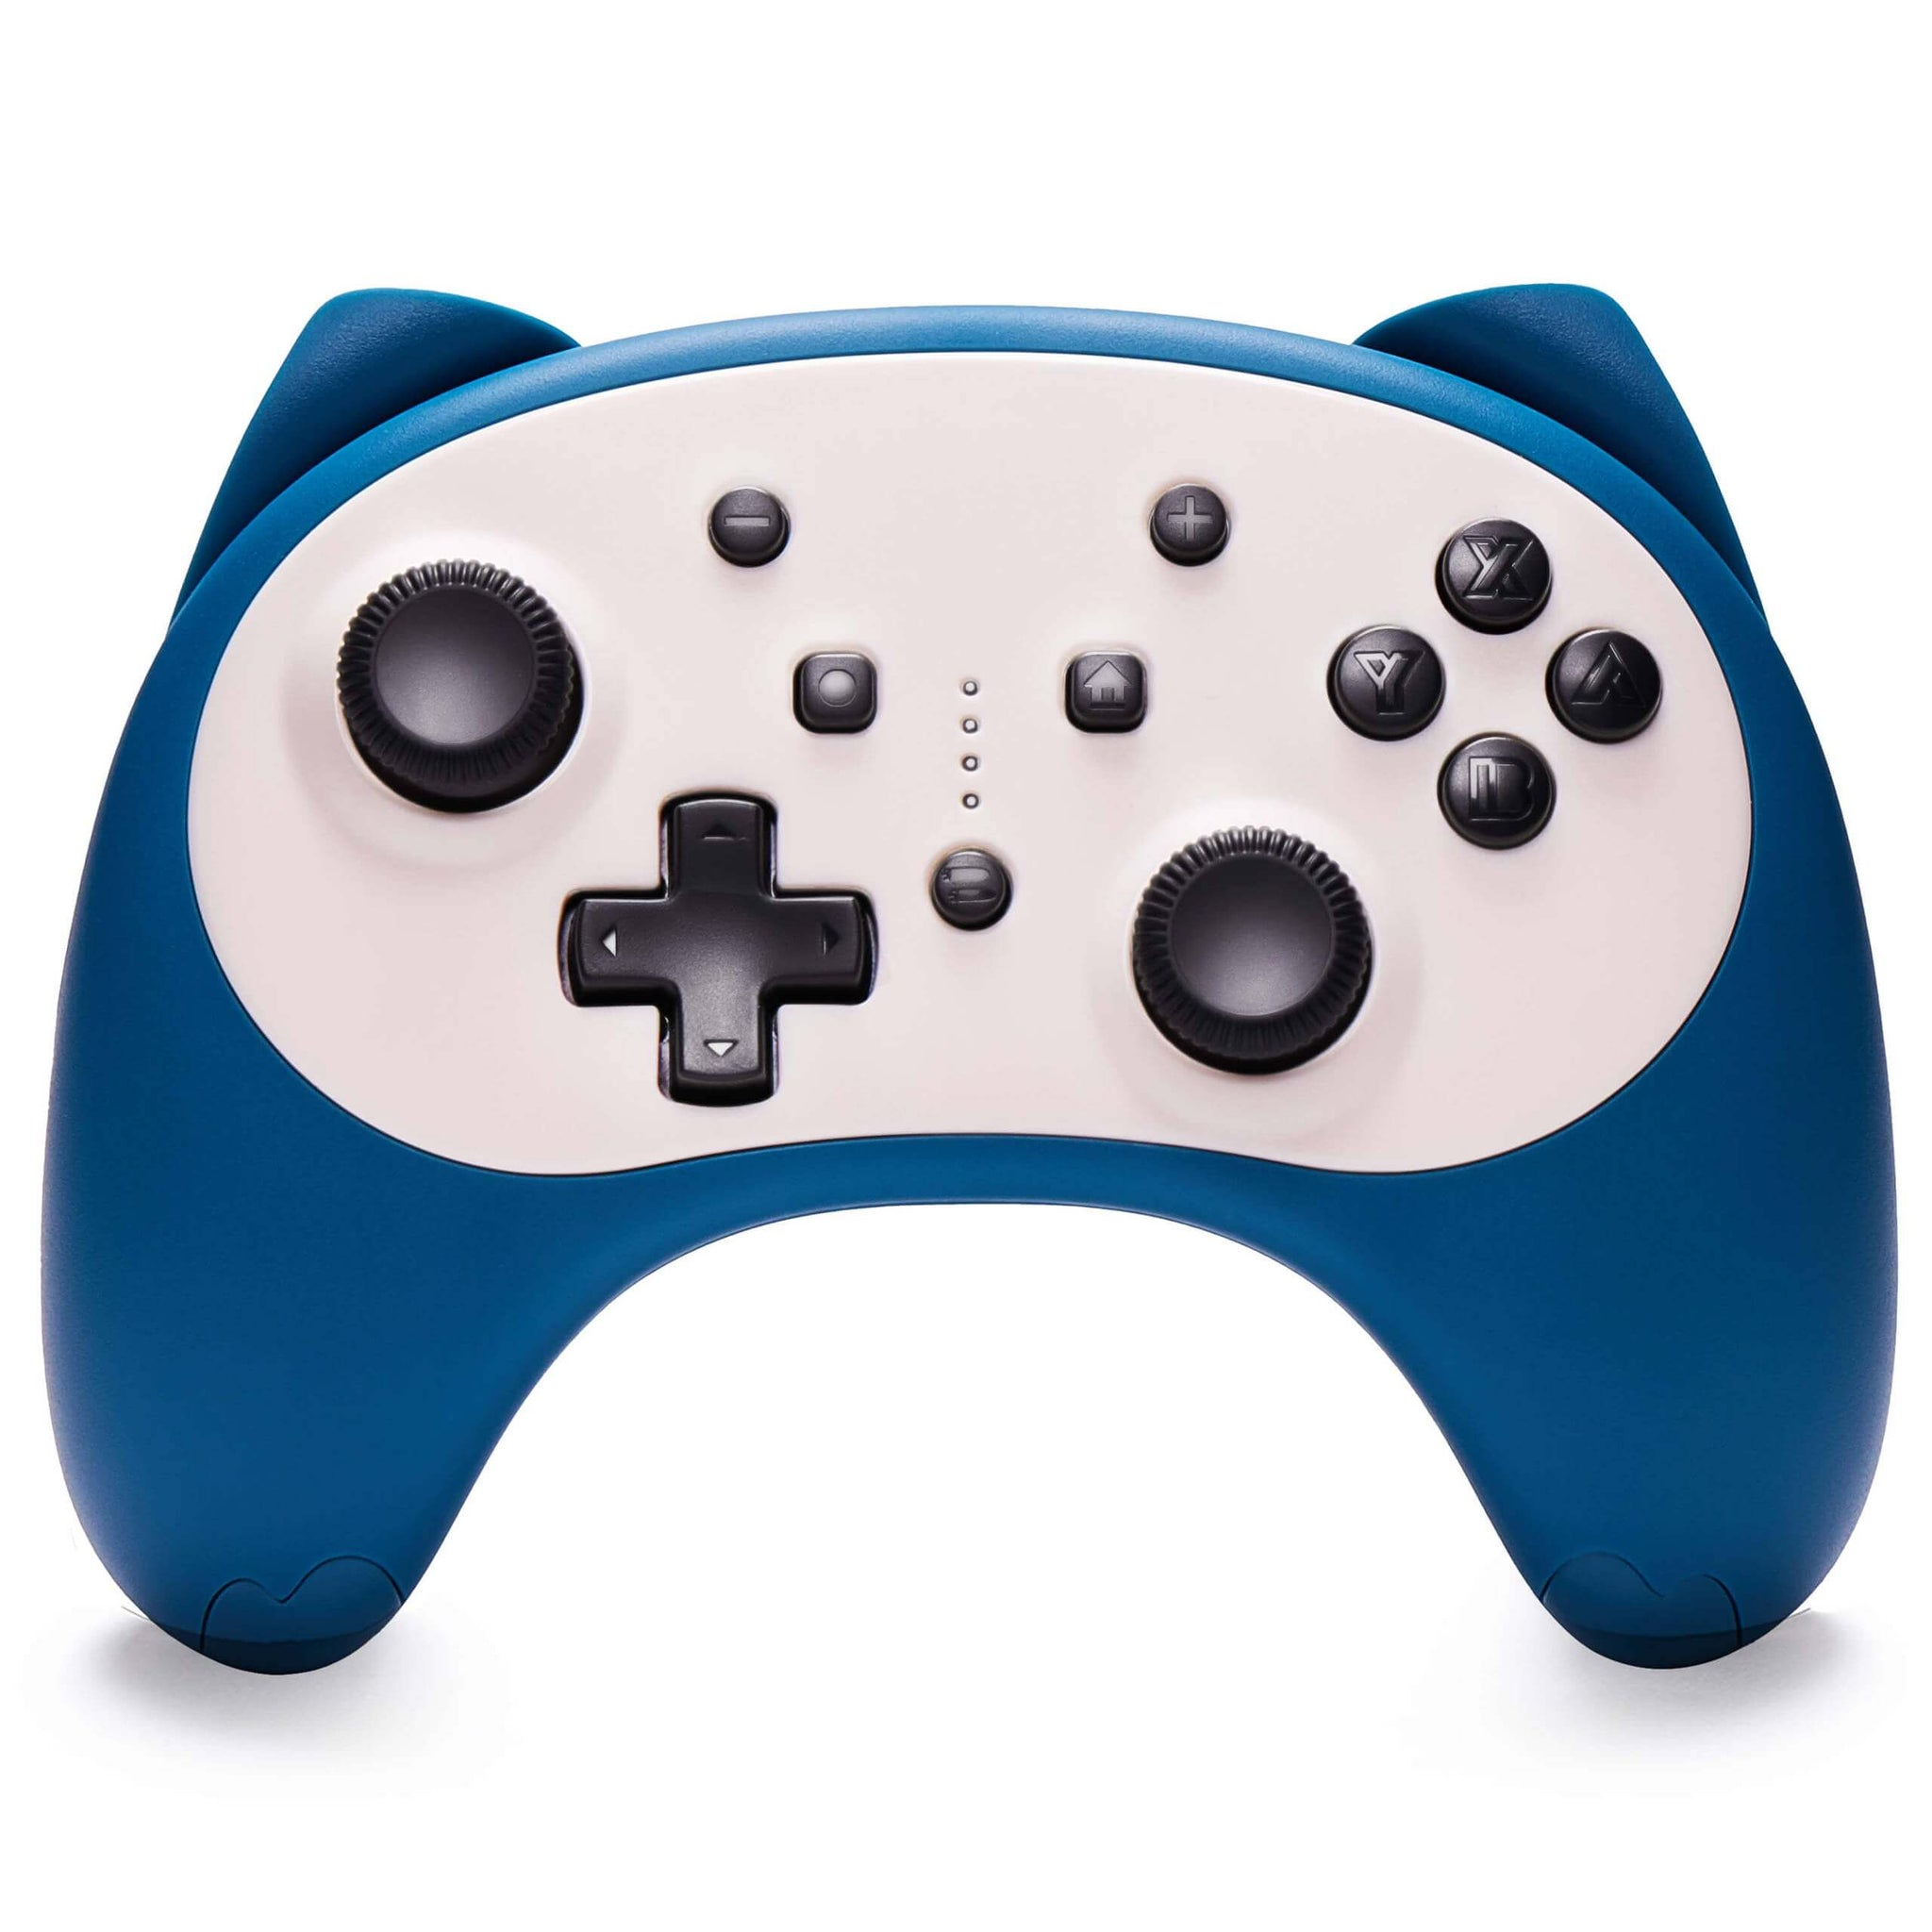 Snorlax Wireless Pro Controller for Nintendo Switch/Switch Lite